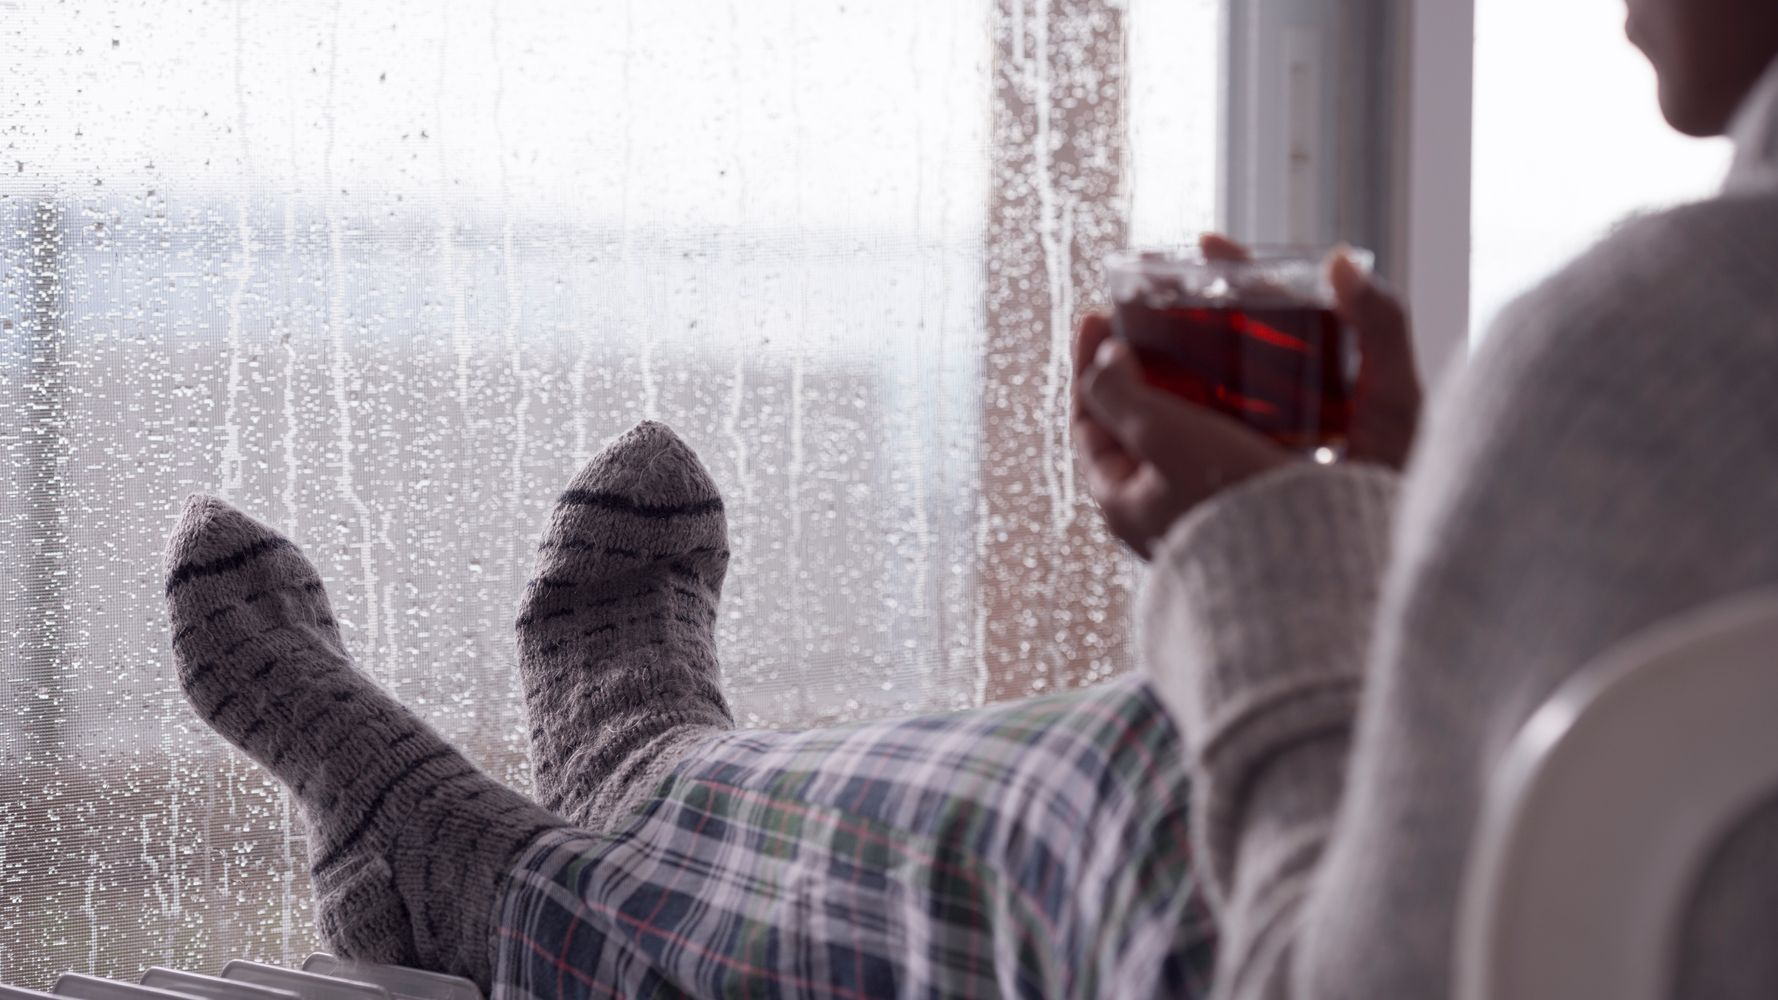 How To Deal With The Relentless Monotony Of Life Right Now